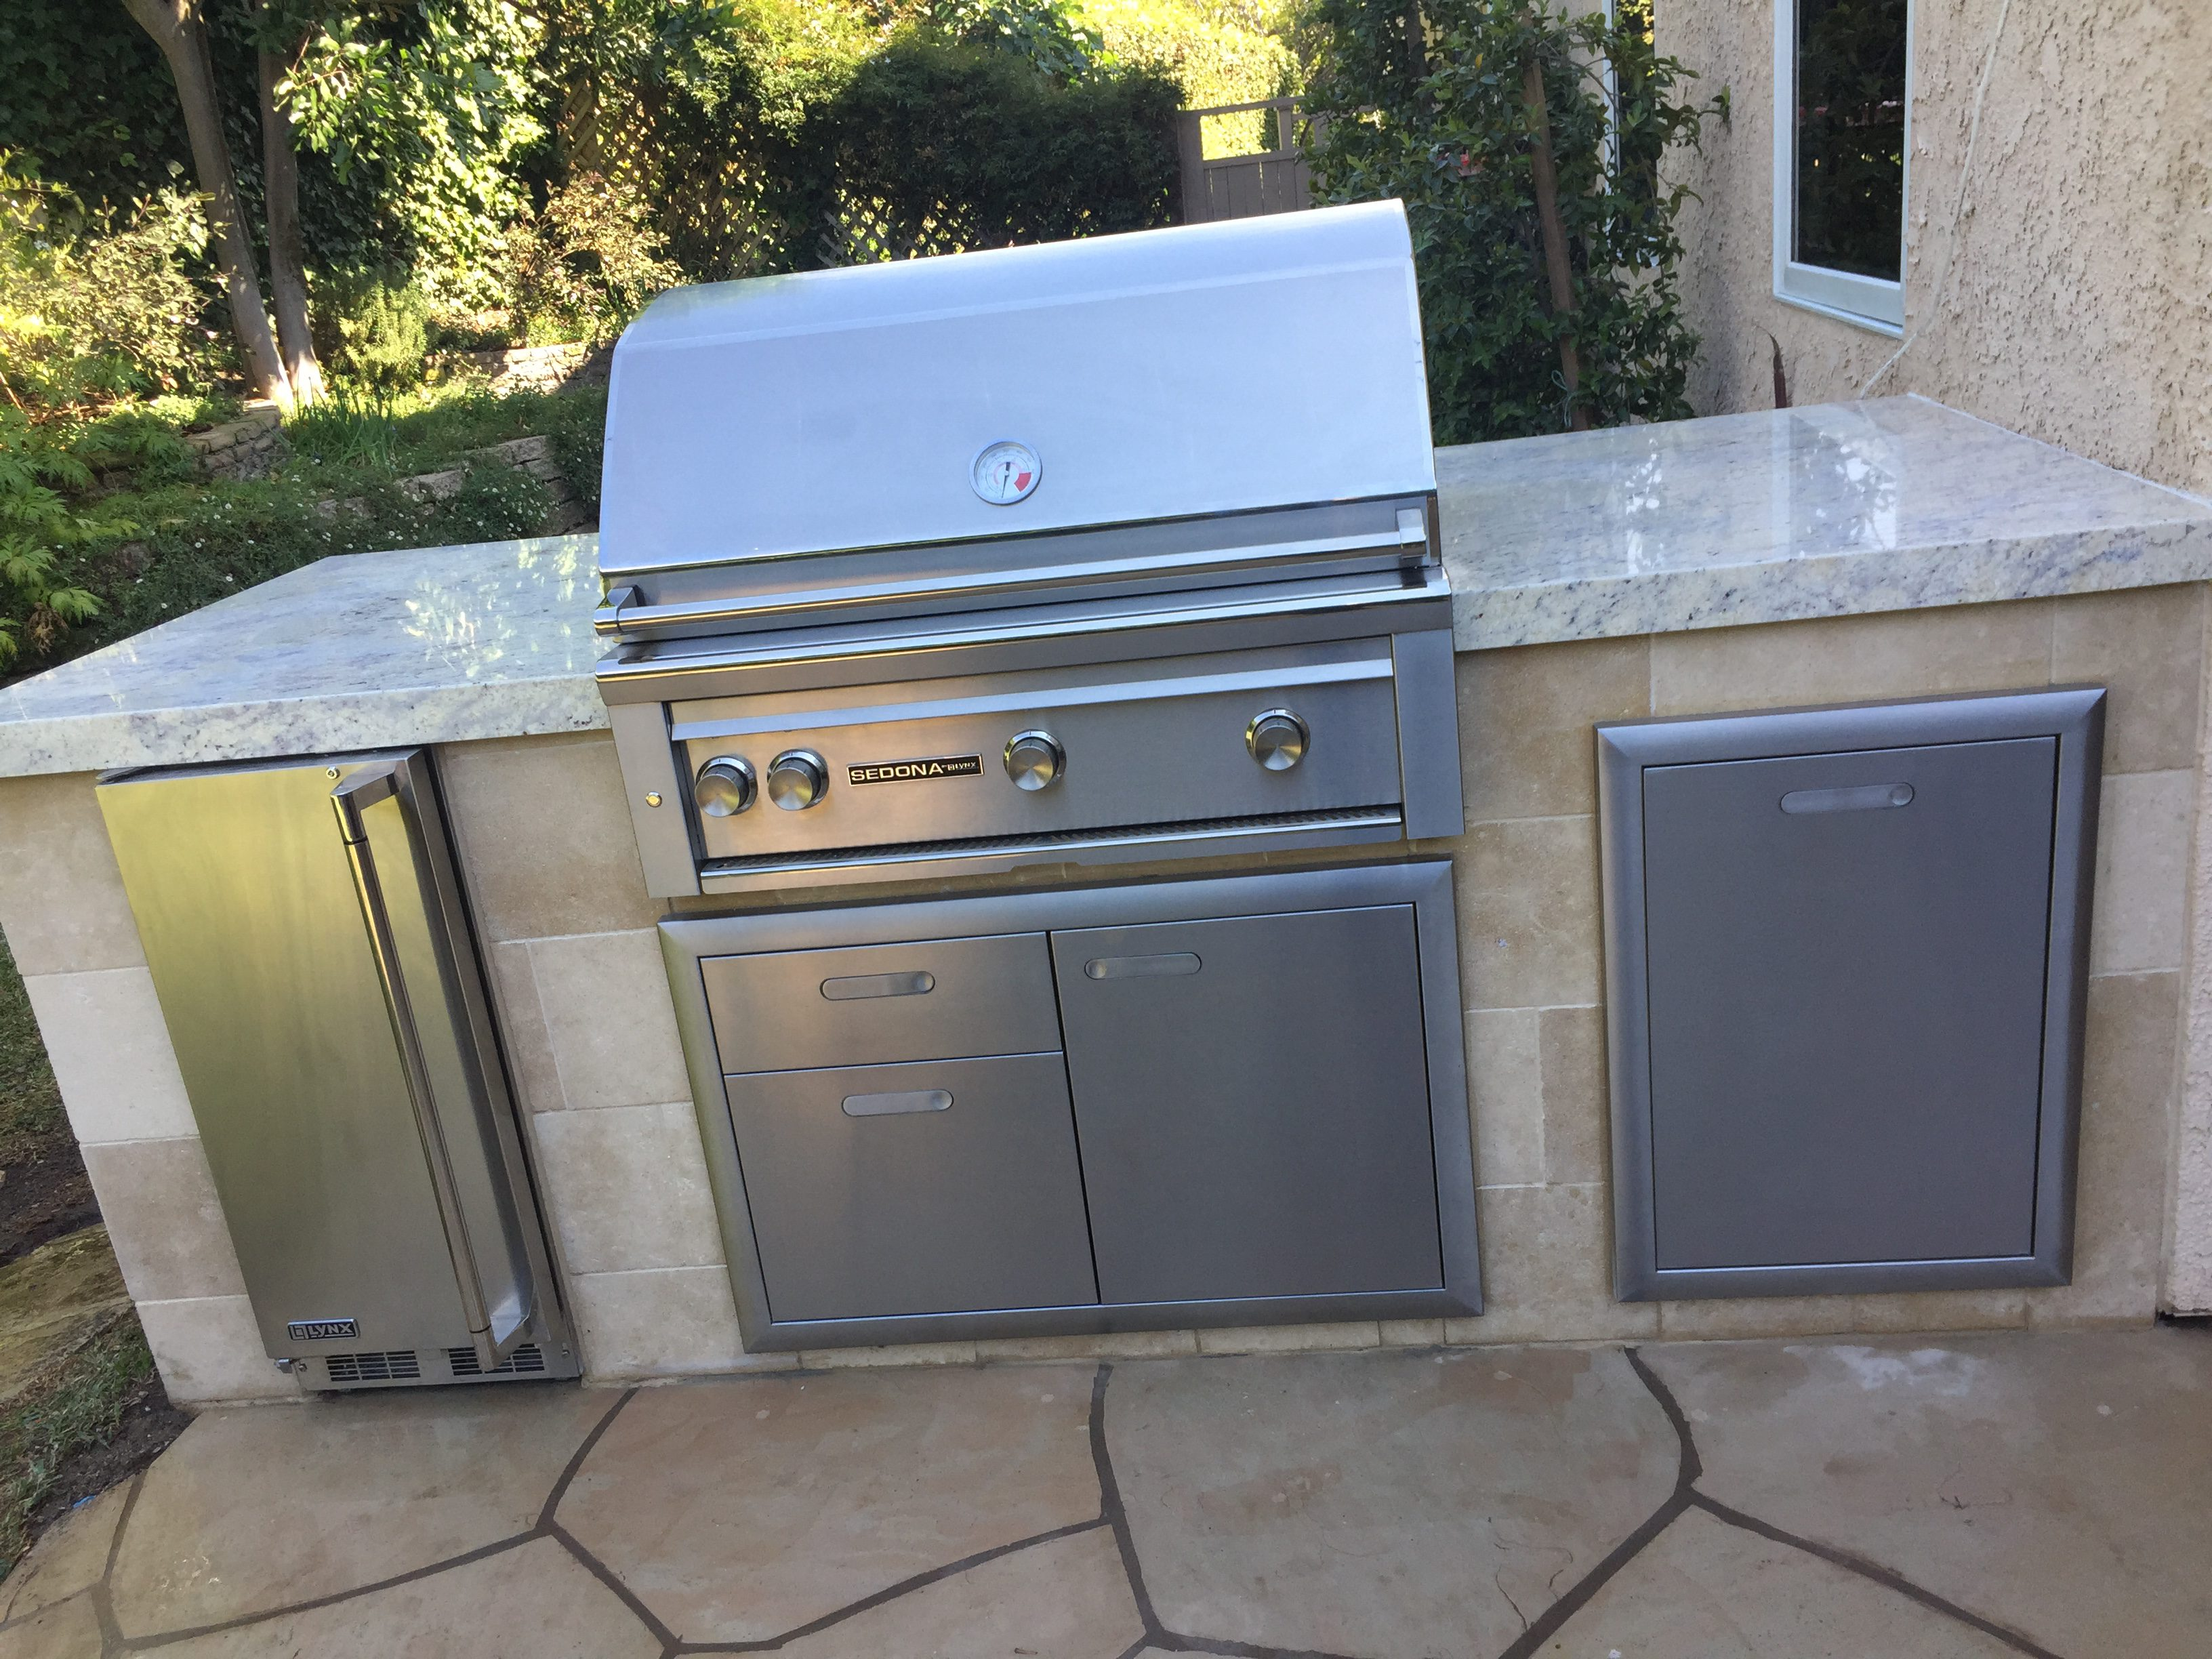 Pacific Palisades Outdoor Kitchen - Granite countertop. Limestone on face of outdoor kitchen